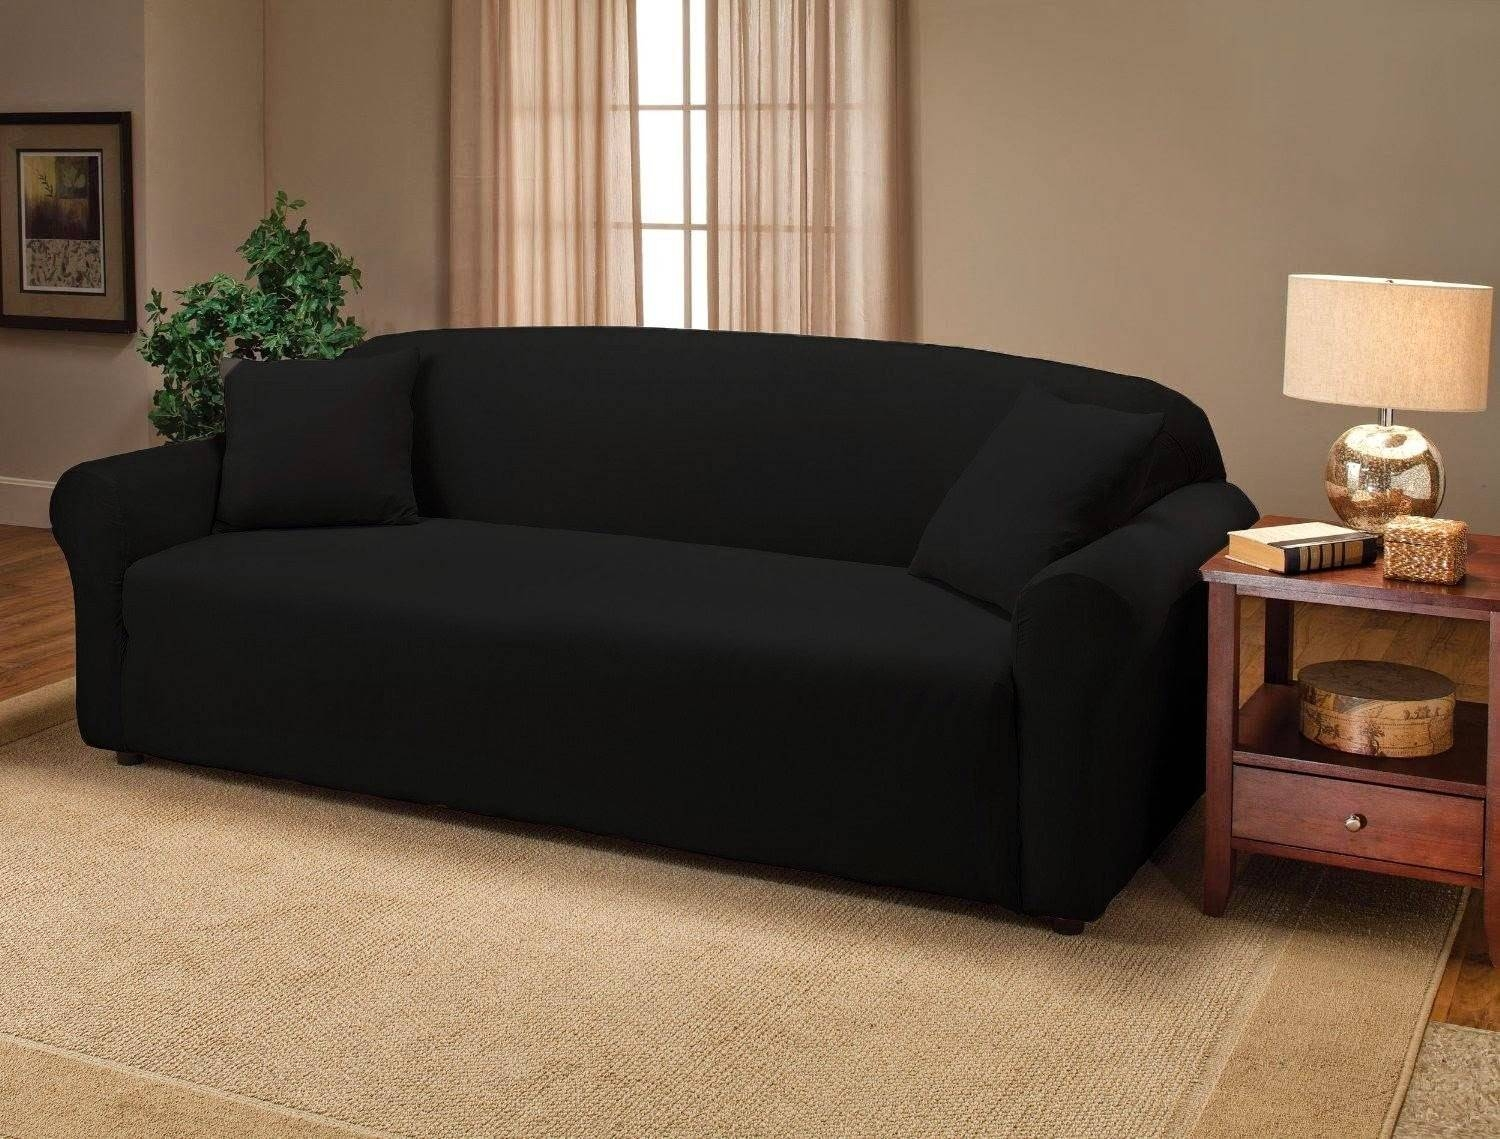 Couch Covers intended for Sofas With Black Cover (Image 6 of 15)